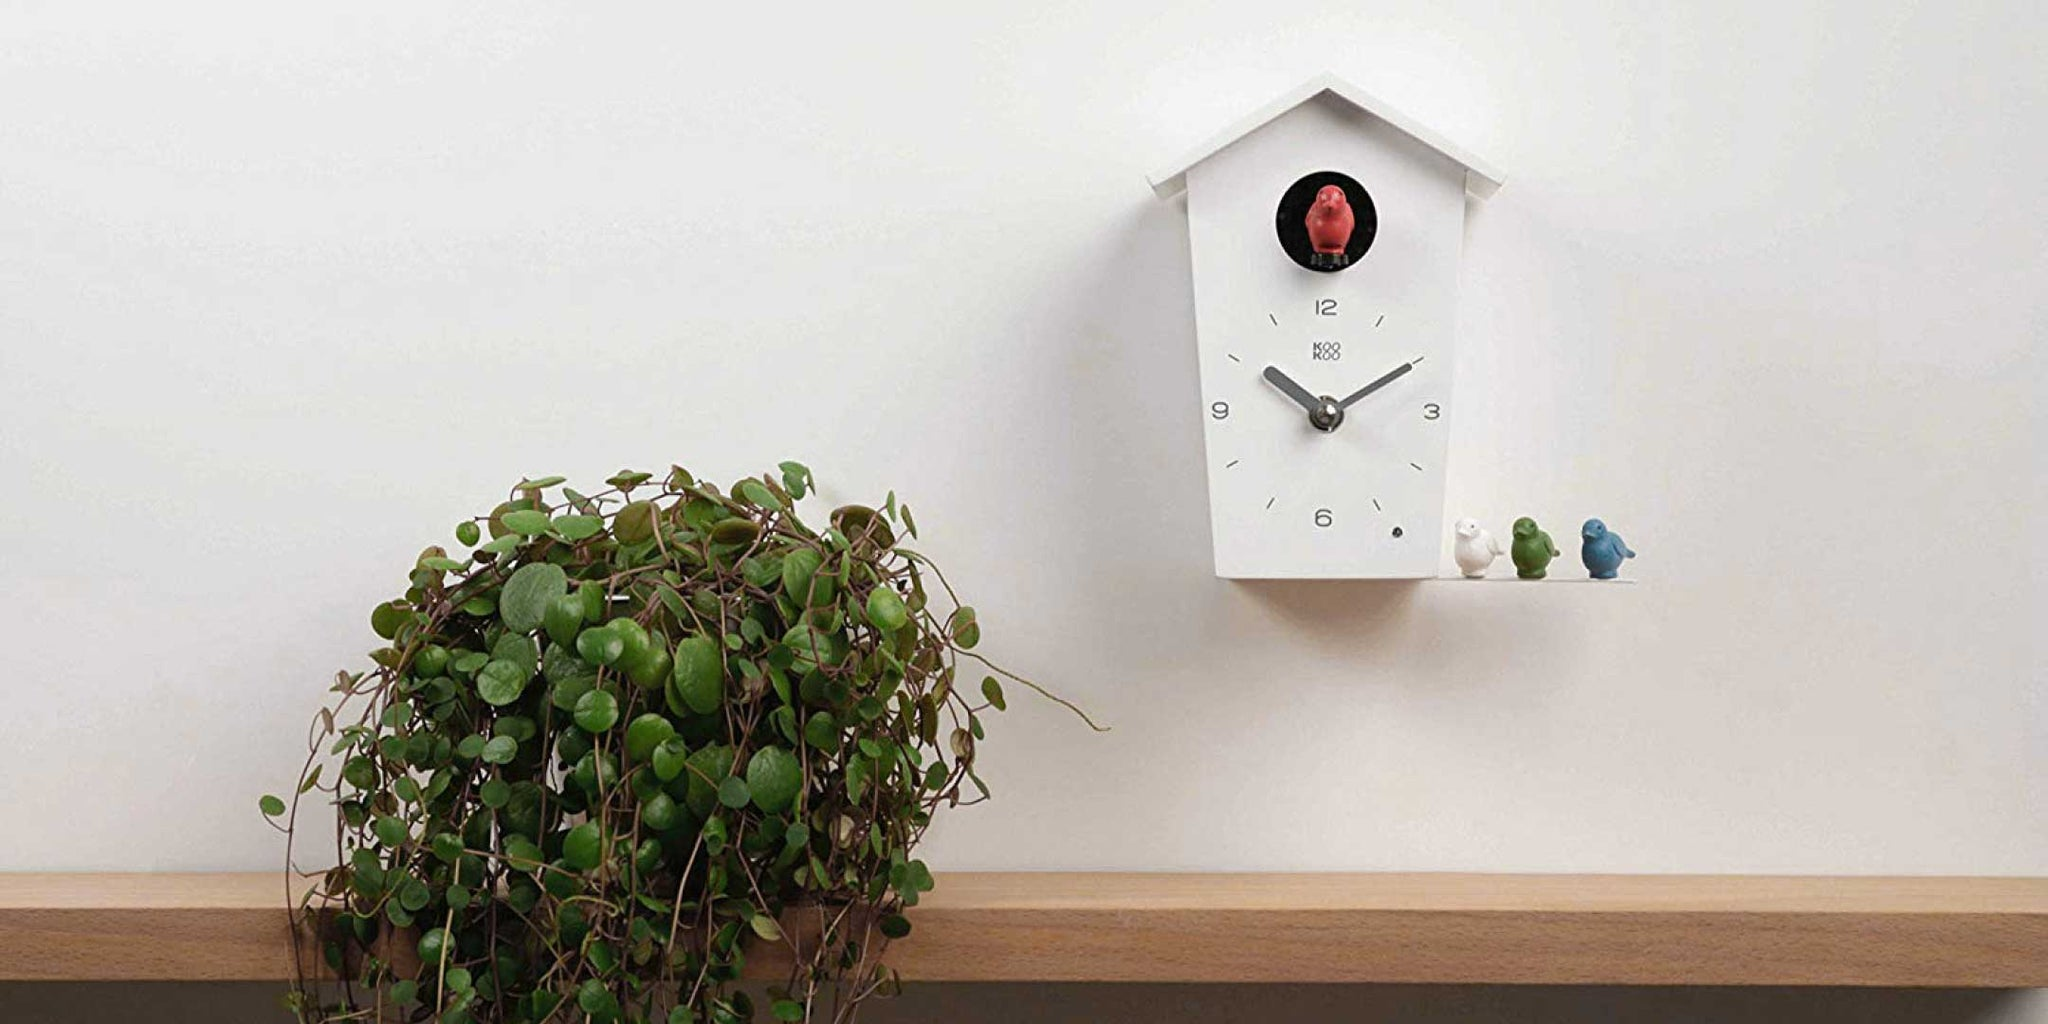 BirdHouse Mini Cuckoo Clock